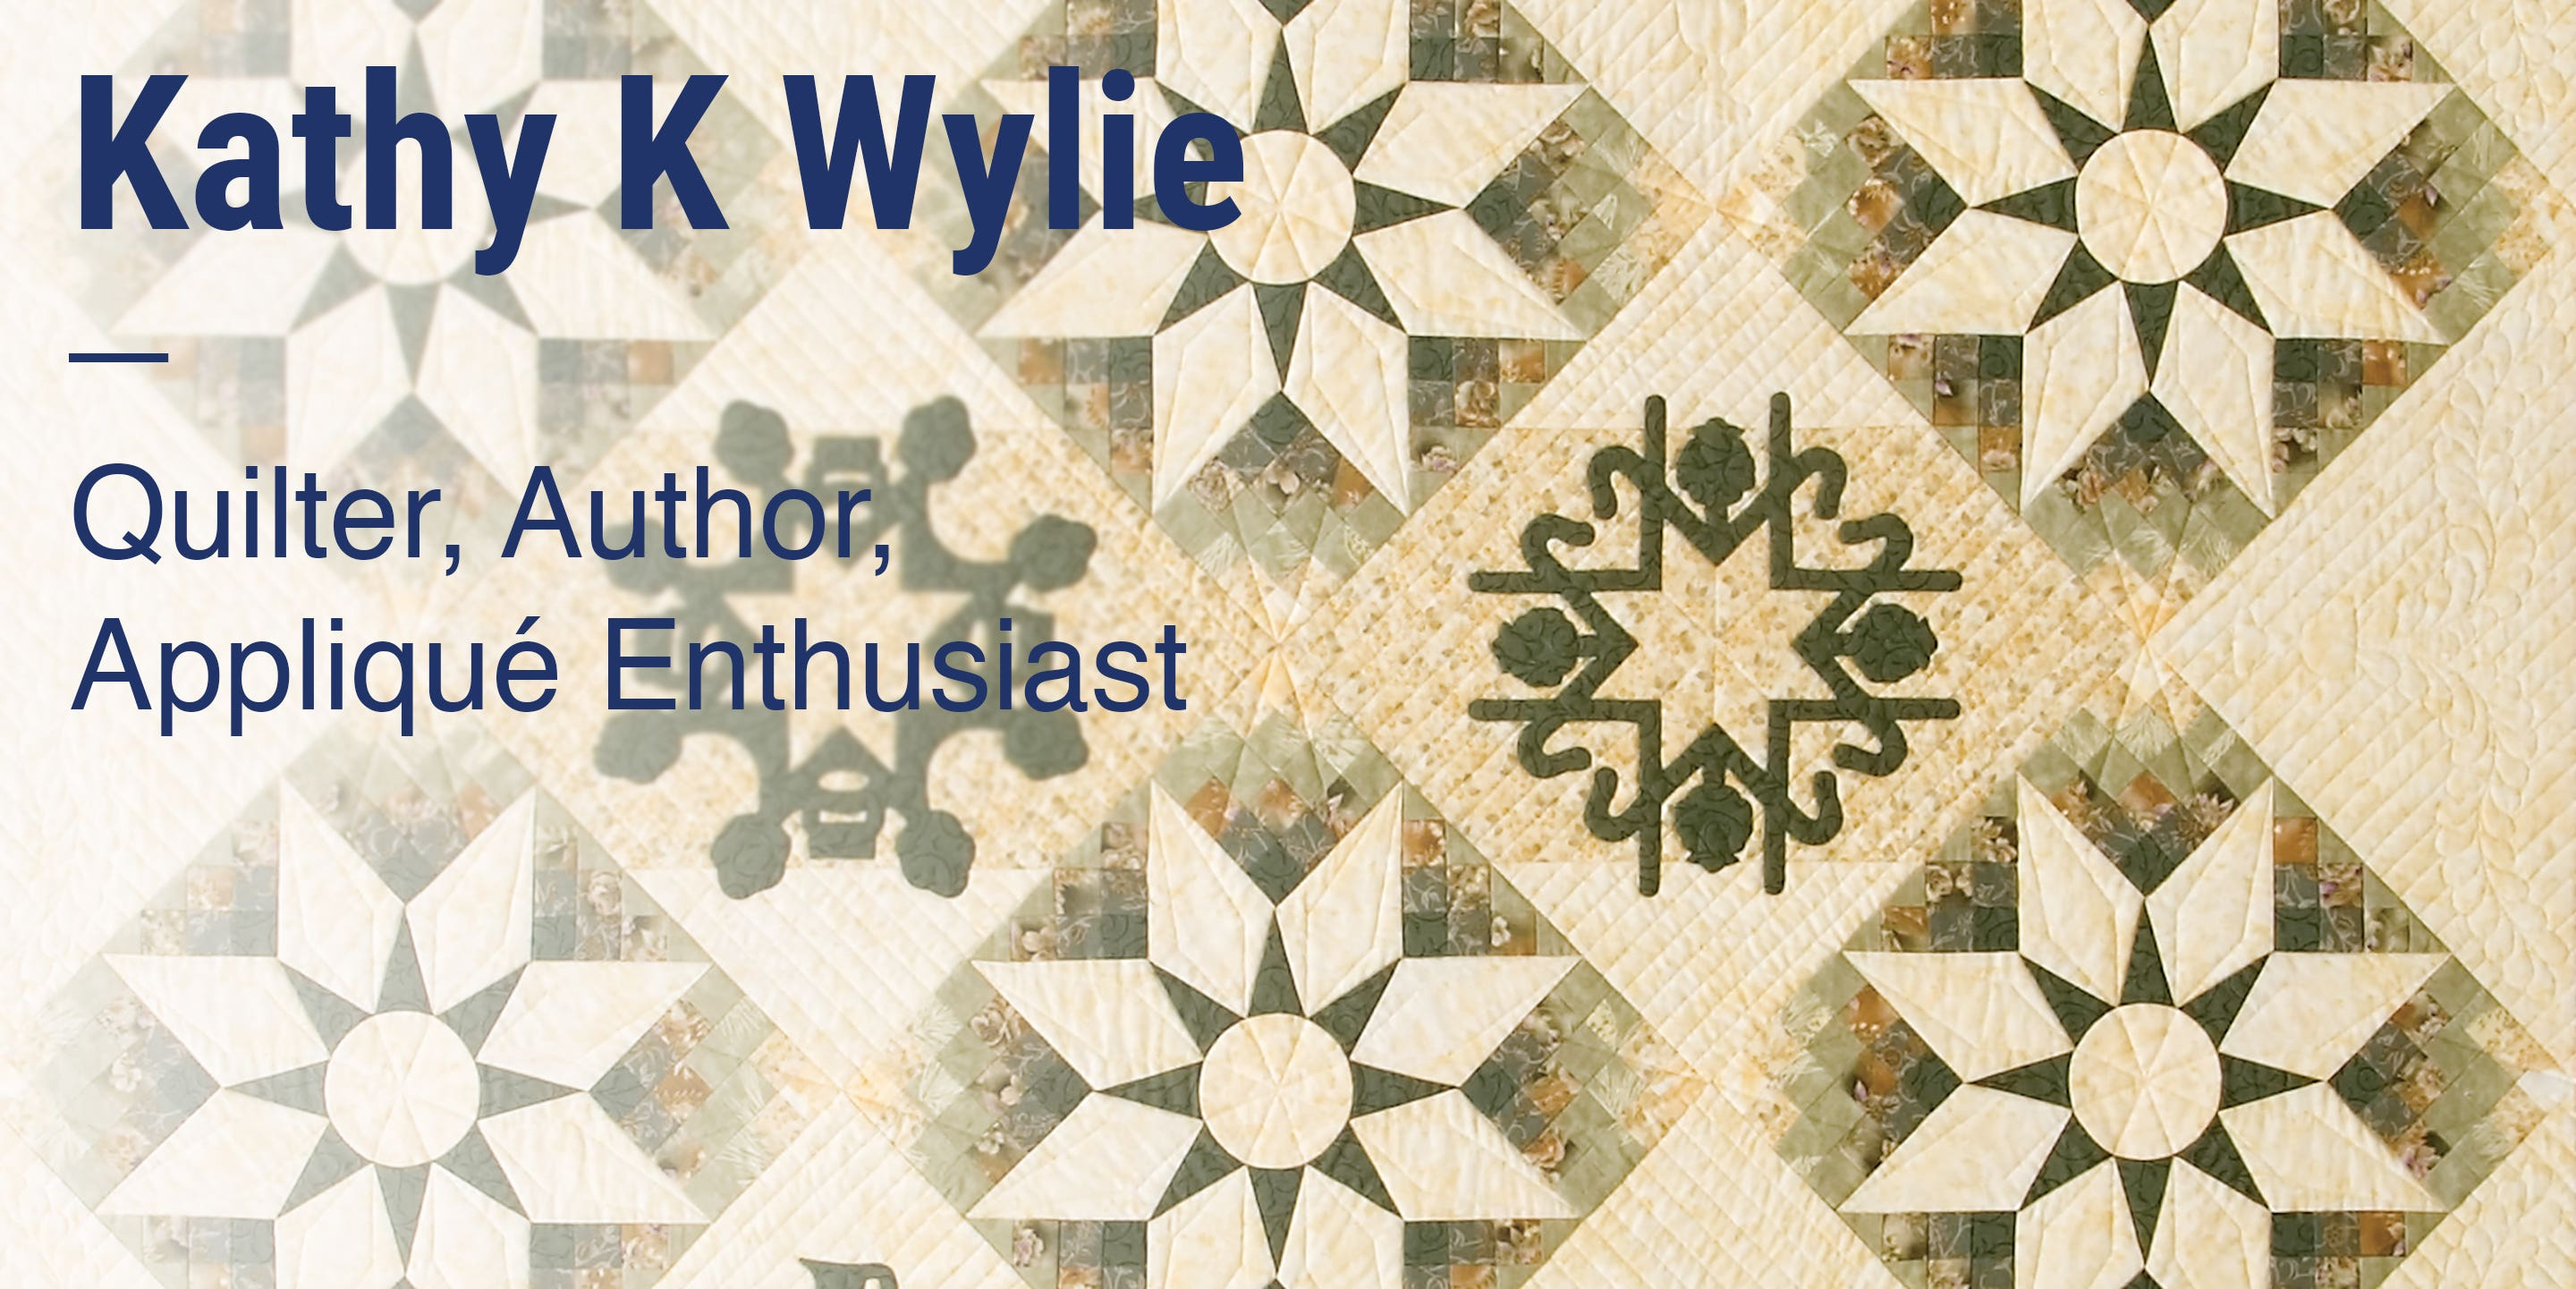 Kathy K Wylie Quilter, Author, Appliqué Enthusiast